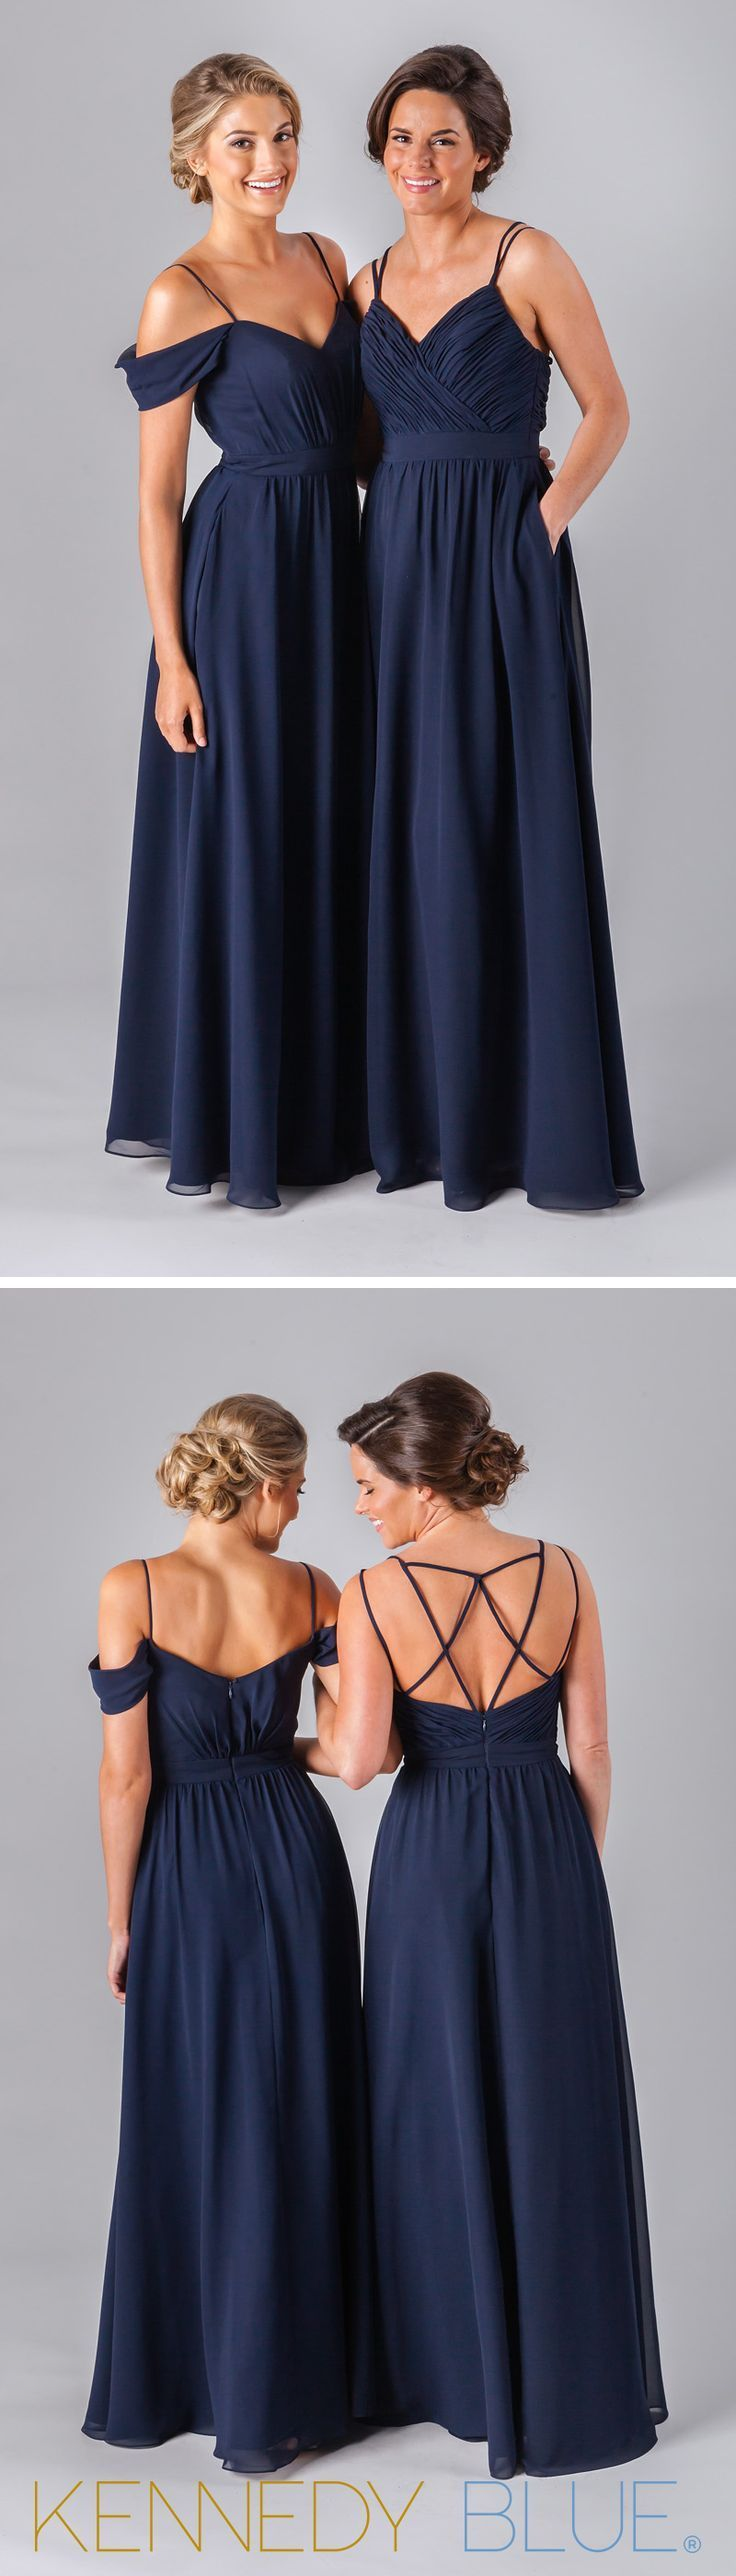 Mix and match navy blue chiffon bridesmaid dresses from Kennedy Blue! Perfect for your spring, summer, fall or winter wedding. Unique, affordable, great quality, and ready to wear again. | Kennedy Blue